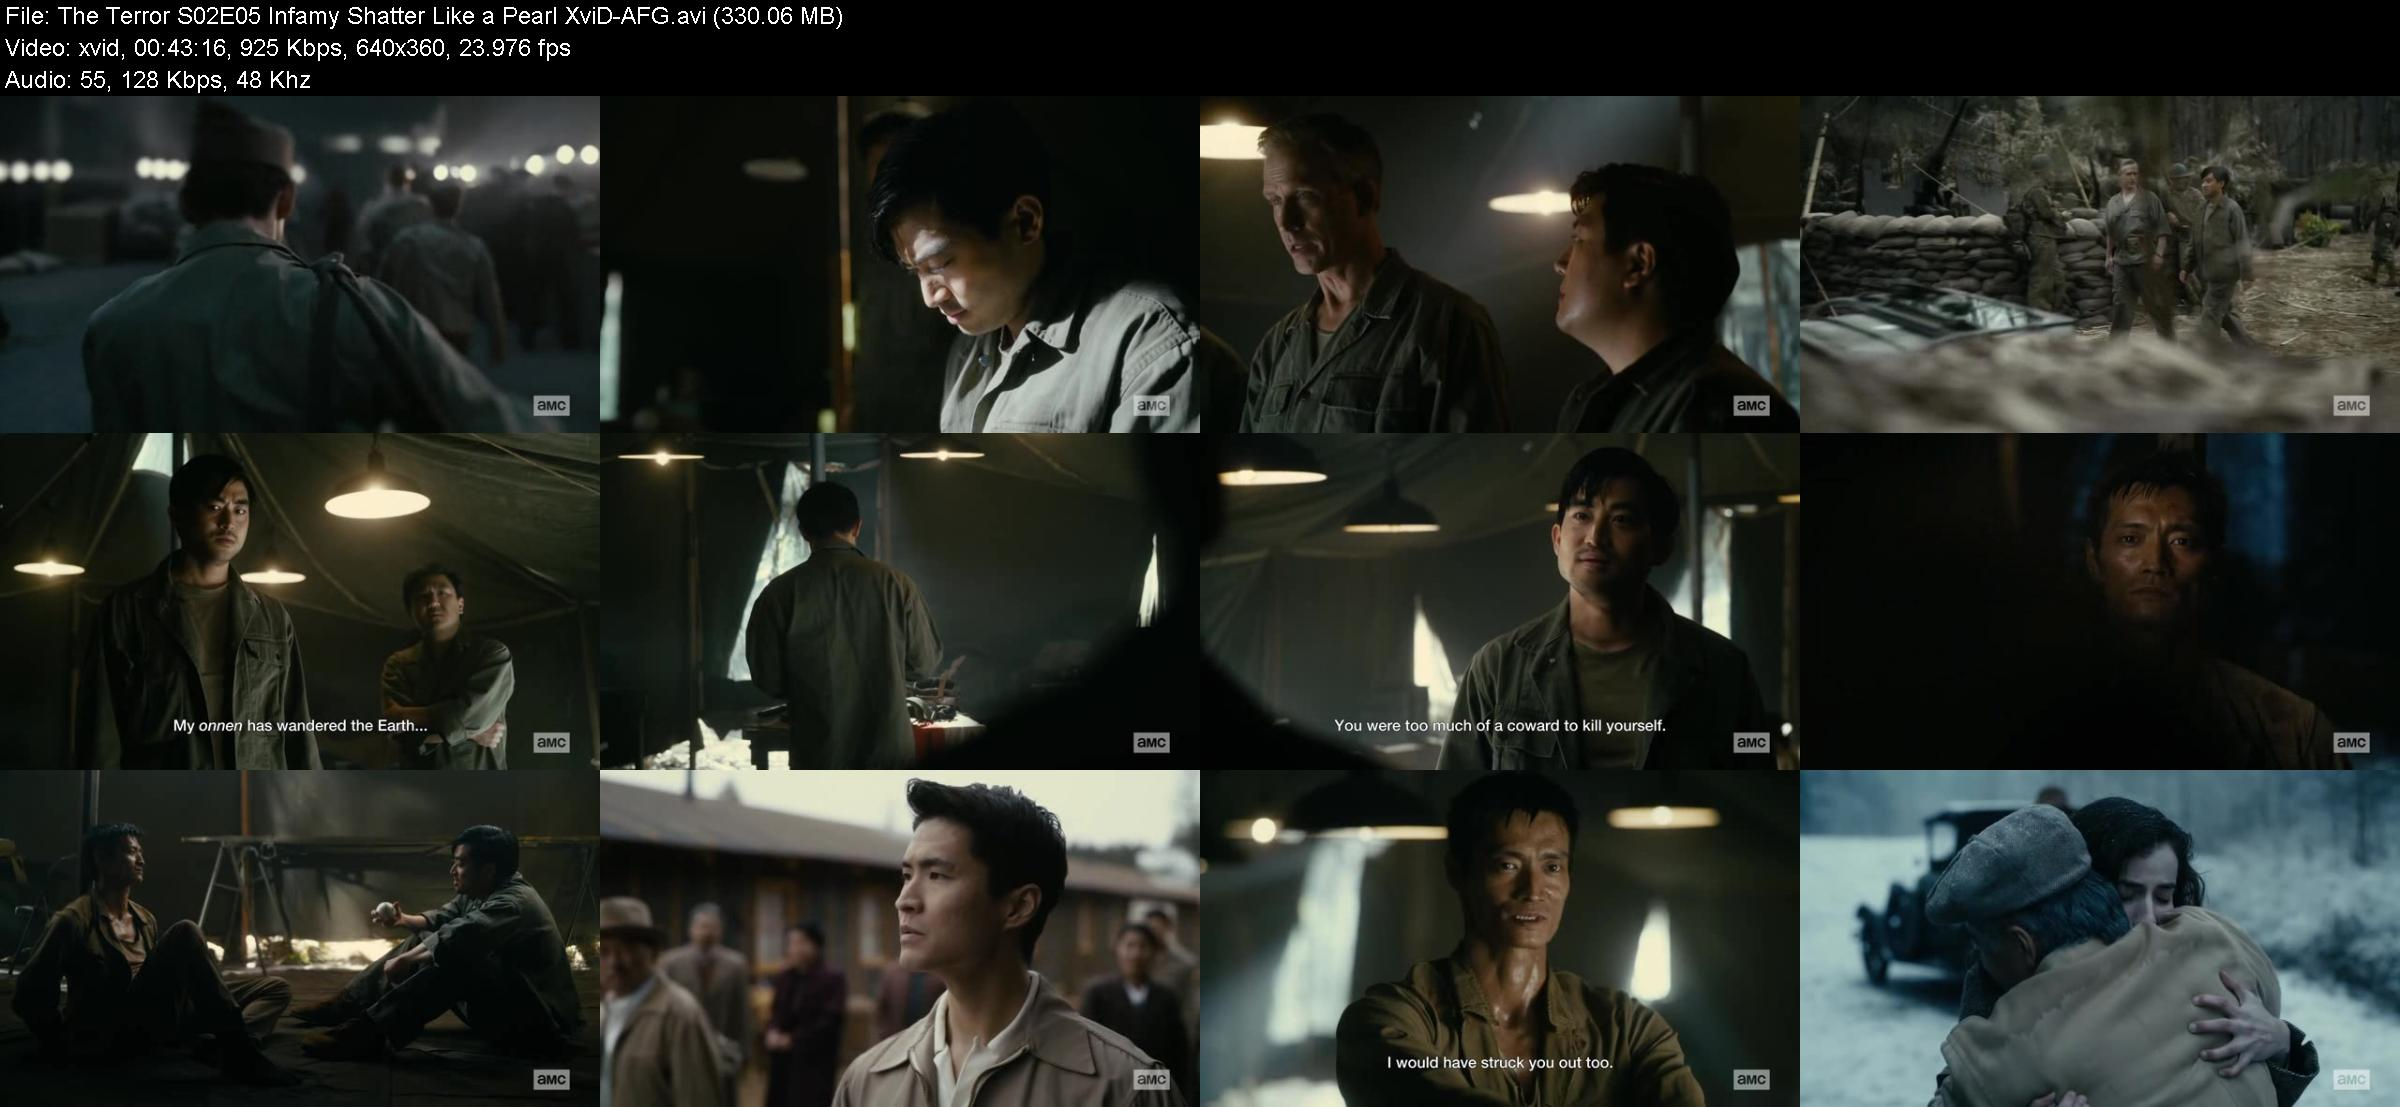 The Terror S02E05 Infamy Shatter Like a Pearl XviD-AFG